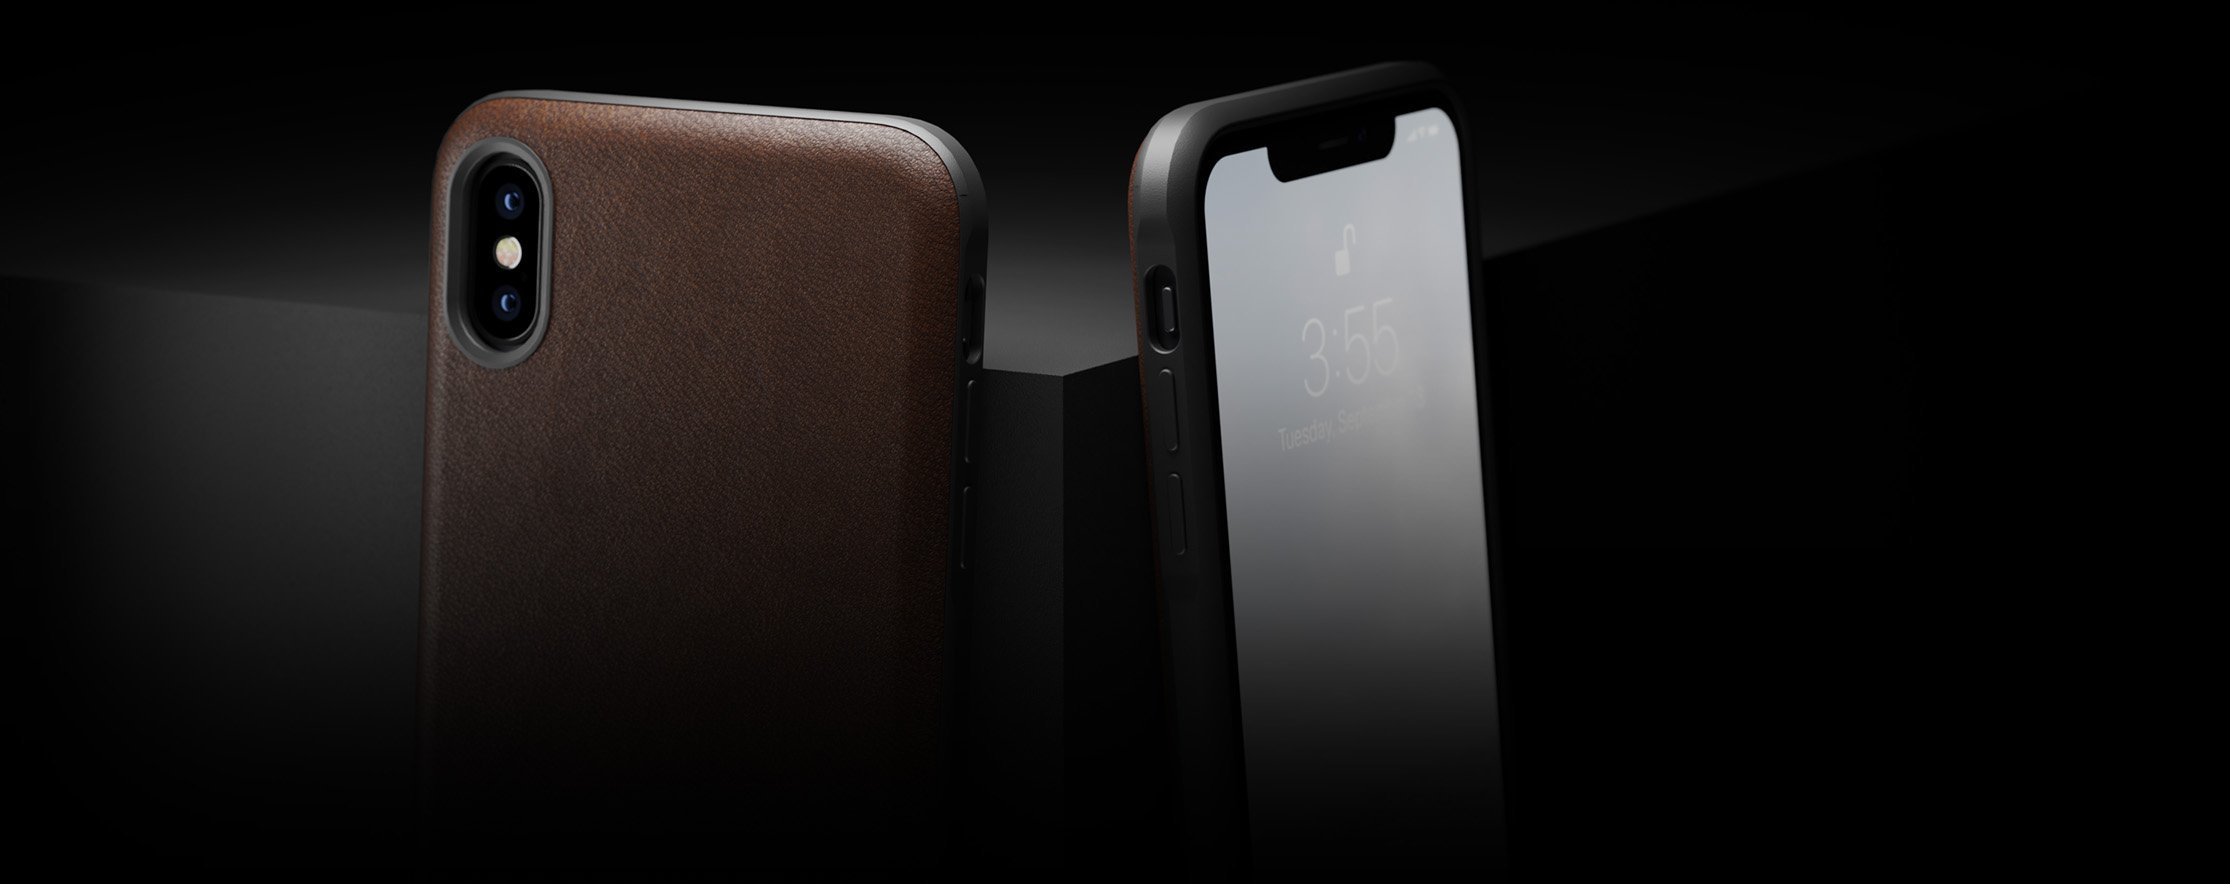 nomad-rugged-case-iphone-xs-max-malaysia-overview-malaysia-2